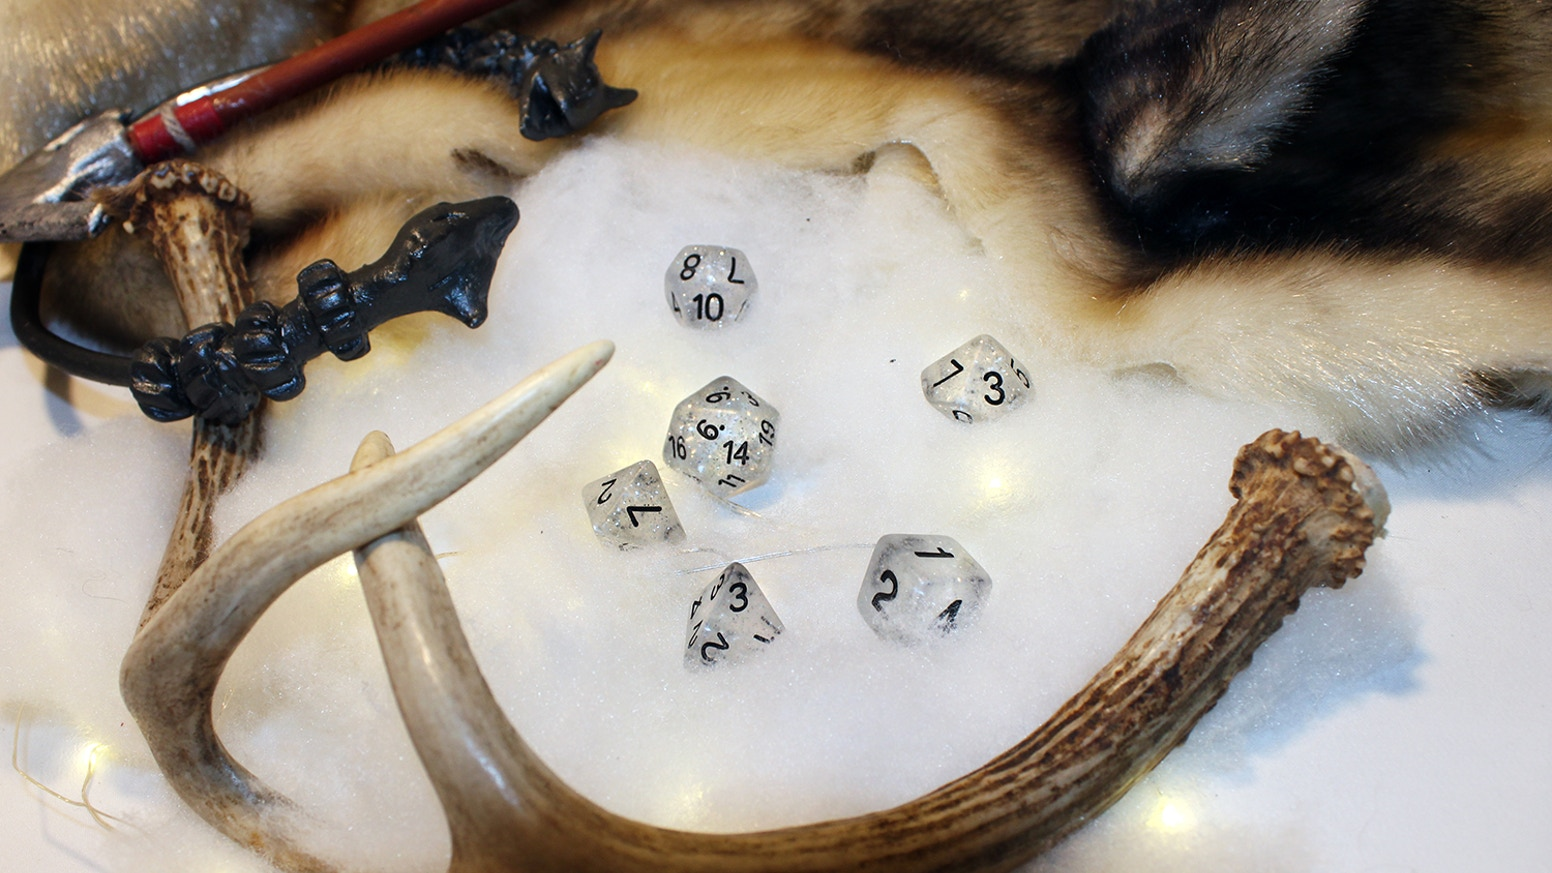 We're going to take our already awesome RPG dice subscription to the next level by manufacturing a custom set of dice.